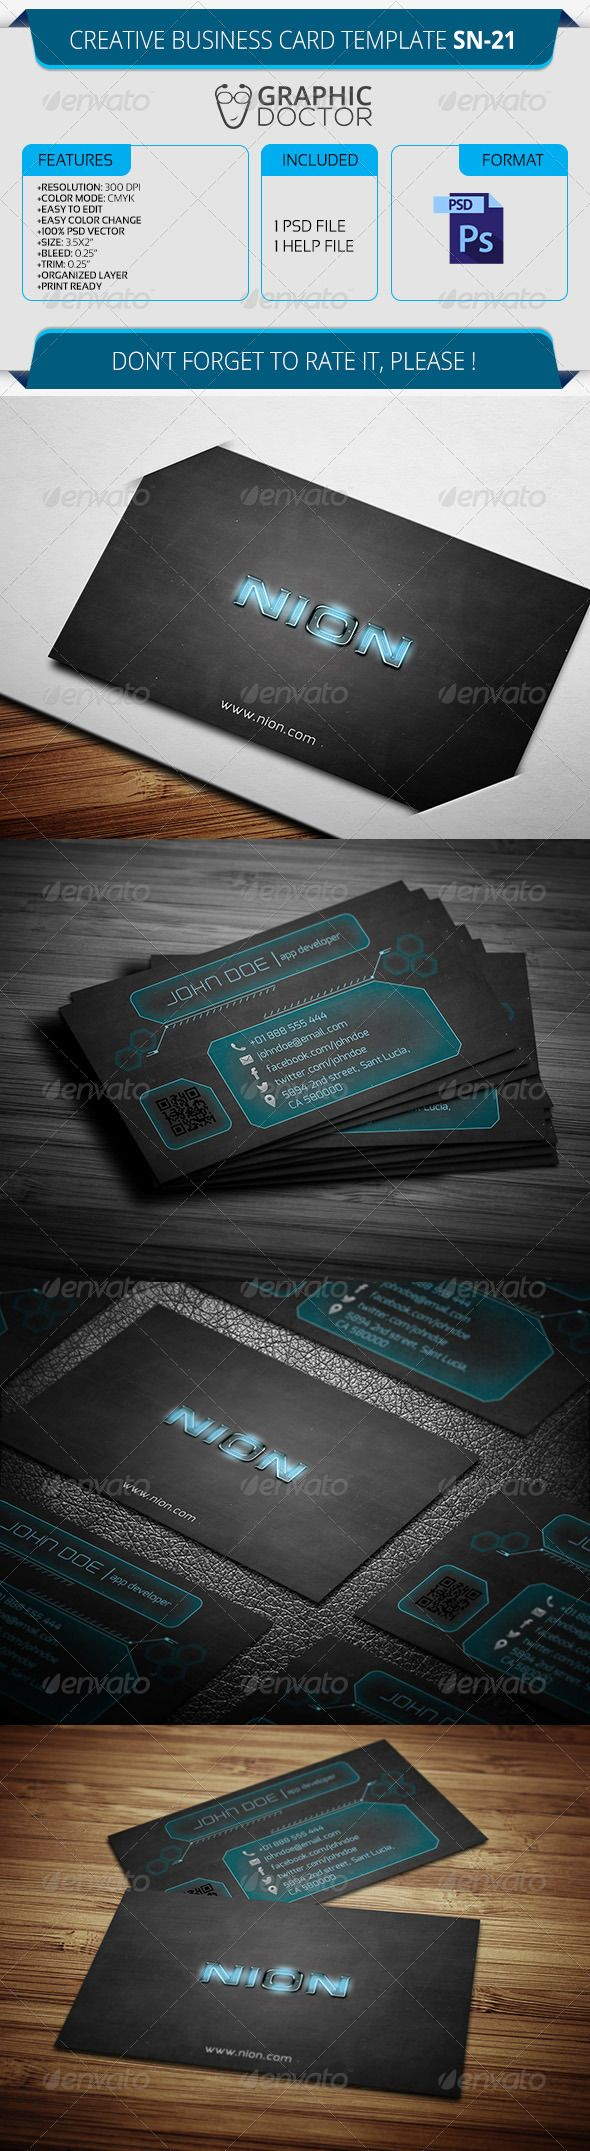 Creative Business Card Template SN Card Templates Business - 35 x2 business card template